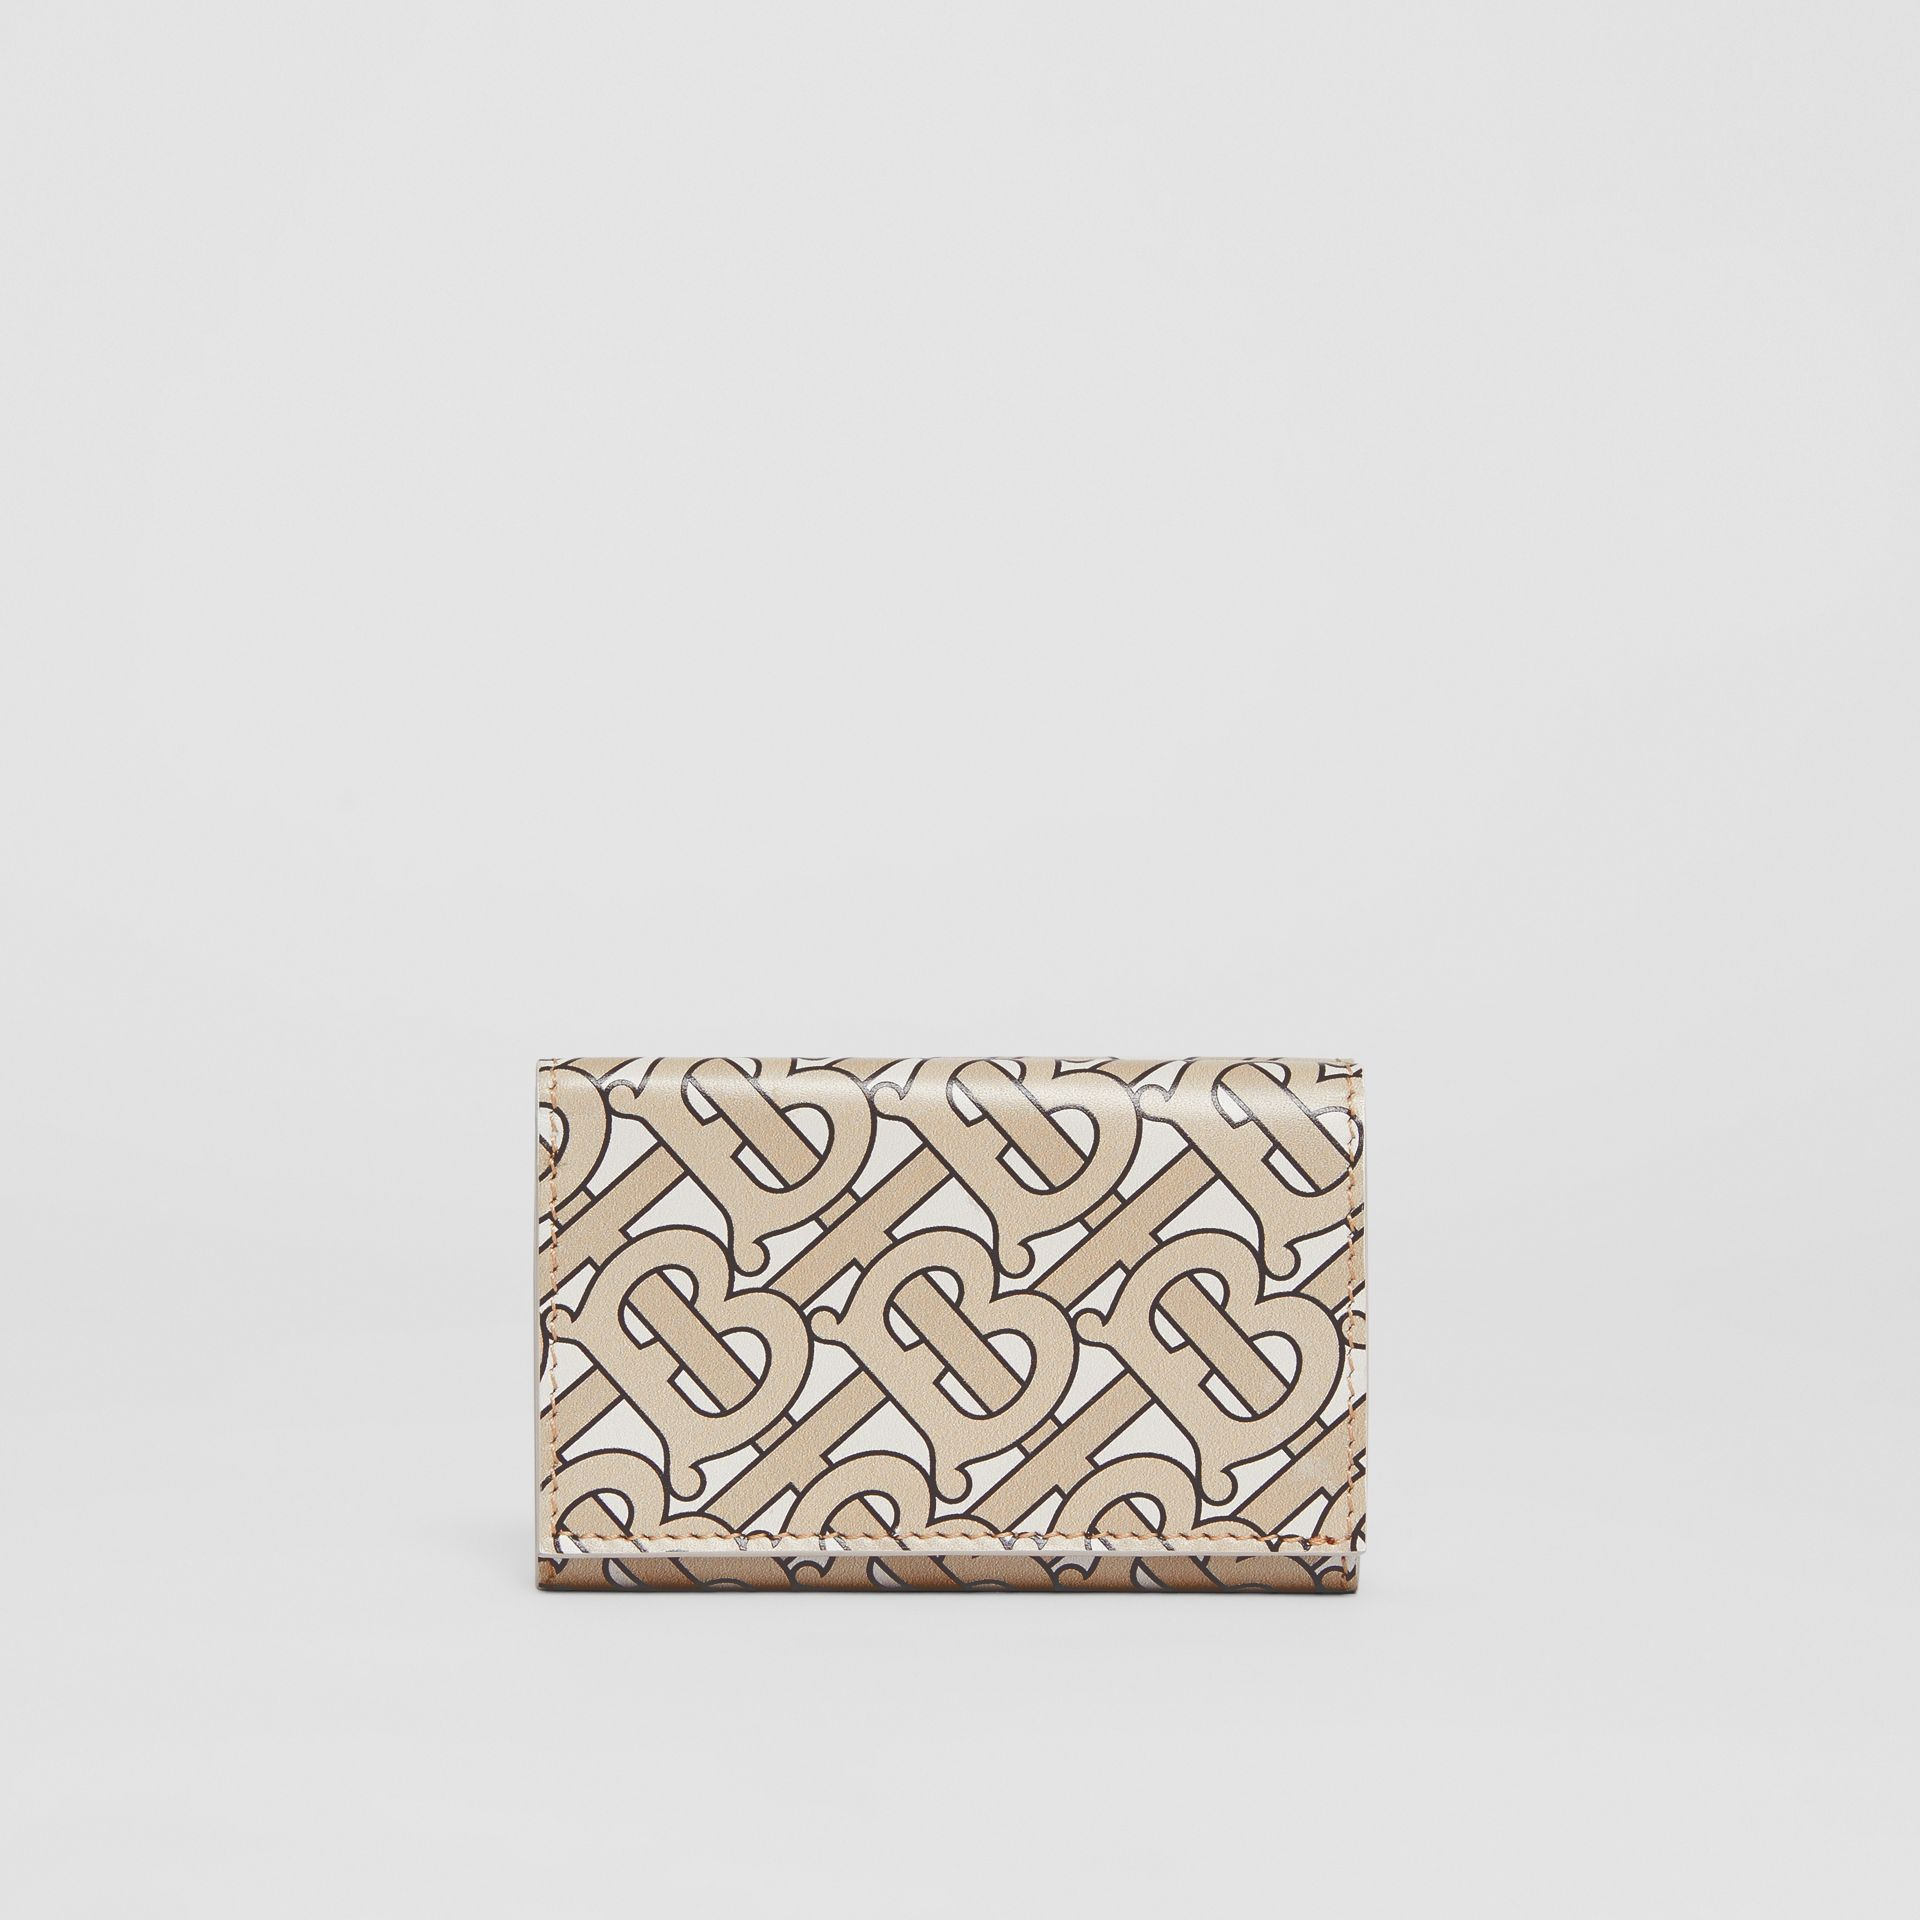 Small Monogram Print Leather Folding Wallet in Beige - Women | Burberry - gallery image 5